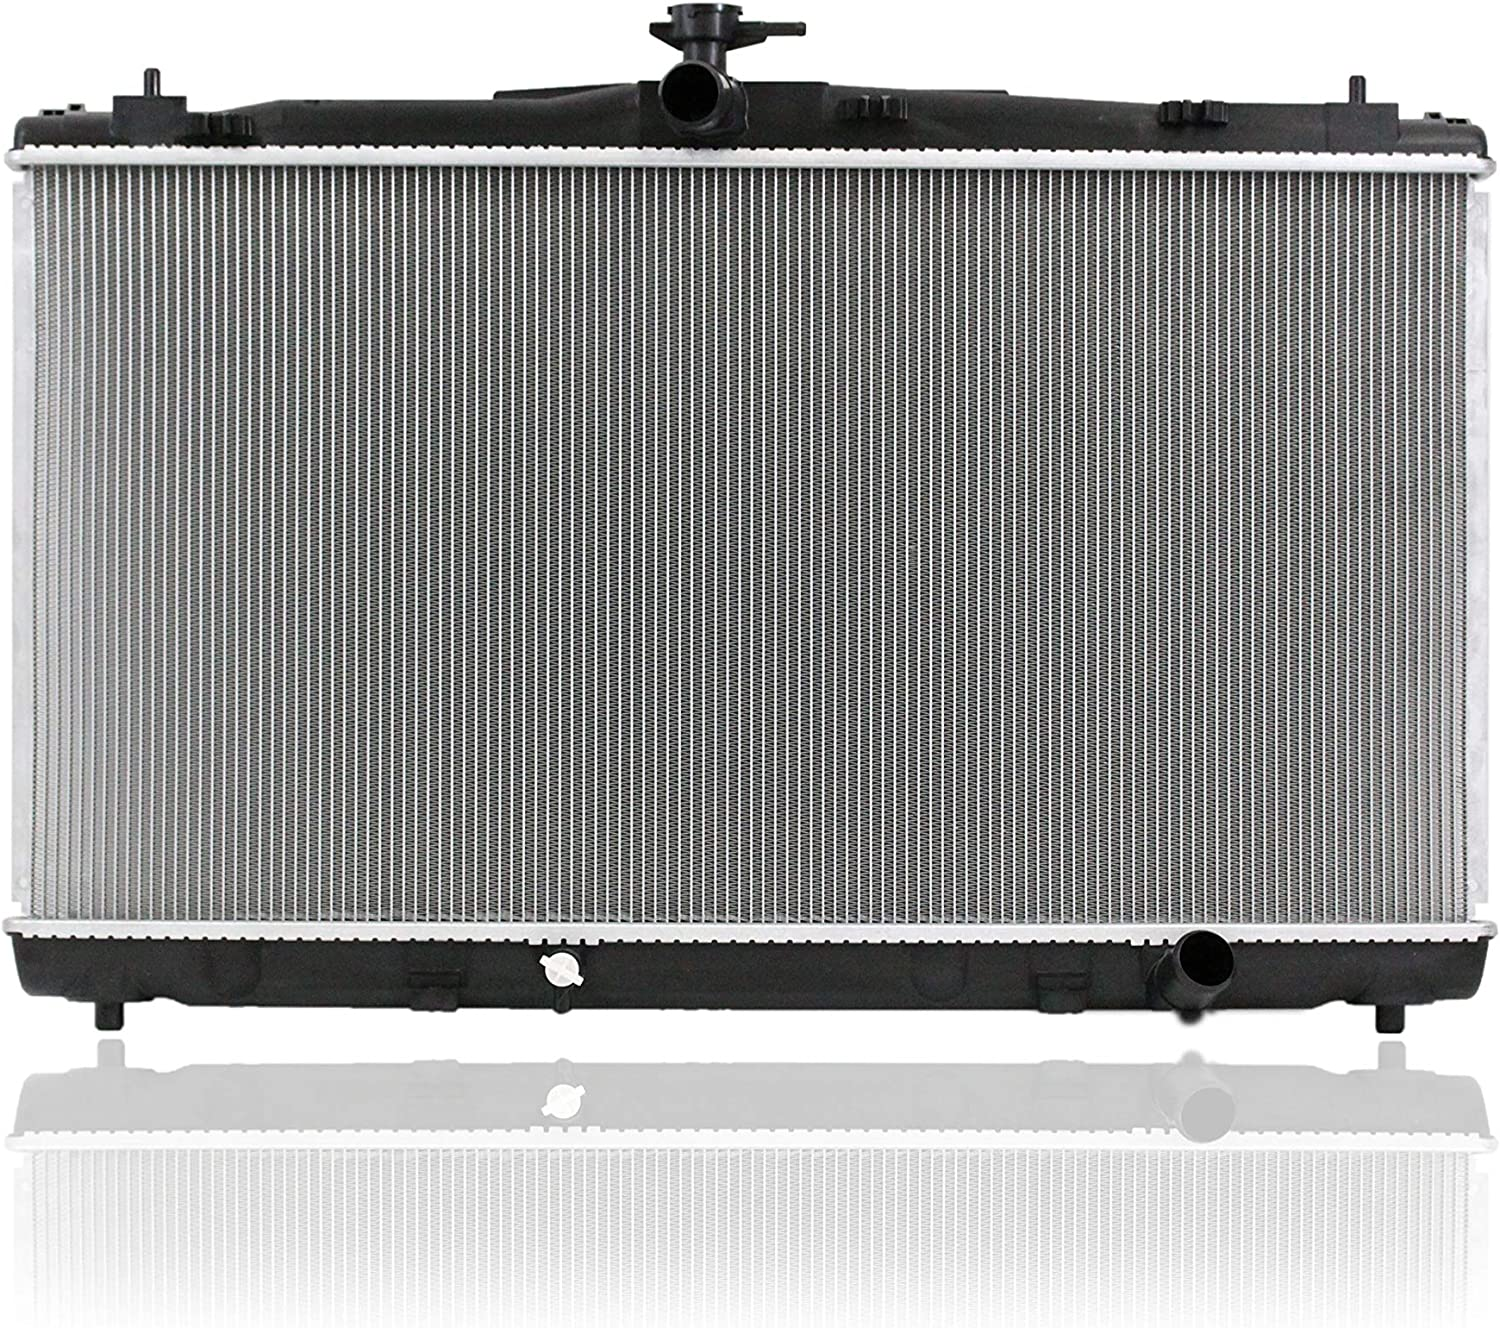 Radiator V6 Automatic//Manual PT//AC 1-Row Pacific Best Inc For//Fit 13270 Toyota Camry Hybrid Avalon Hybrid 2.5//3.5 Liter L4